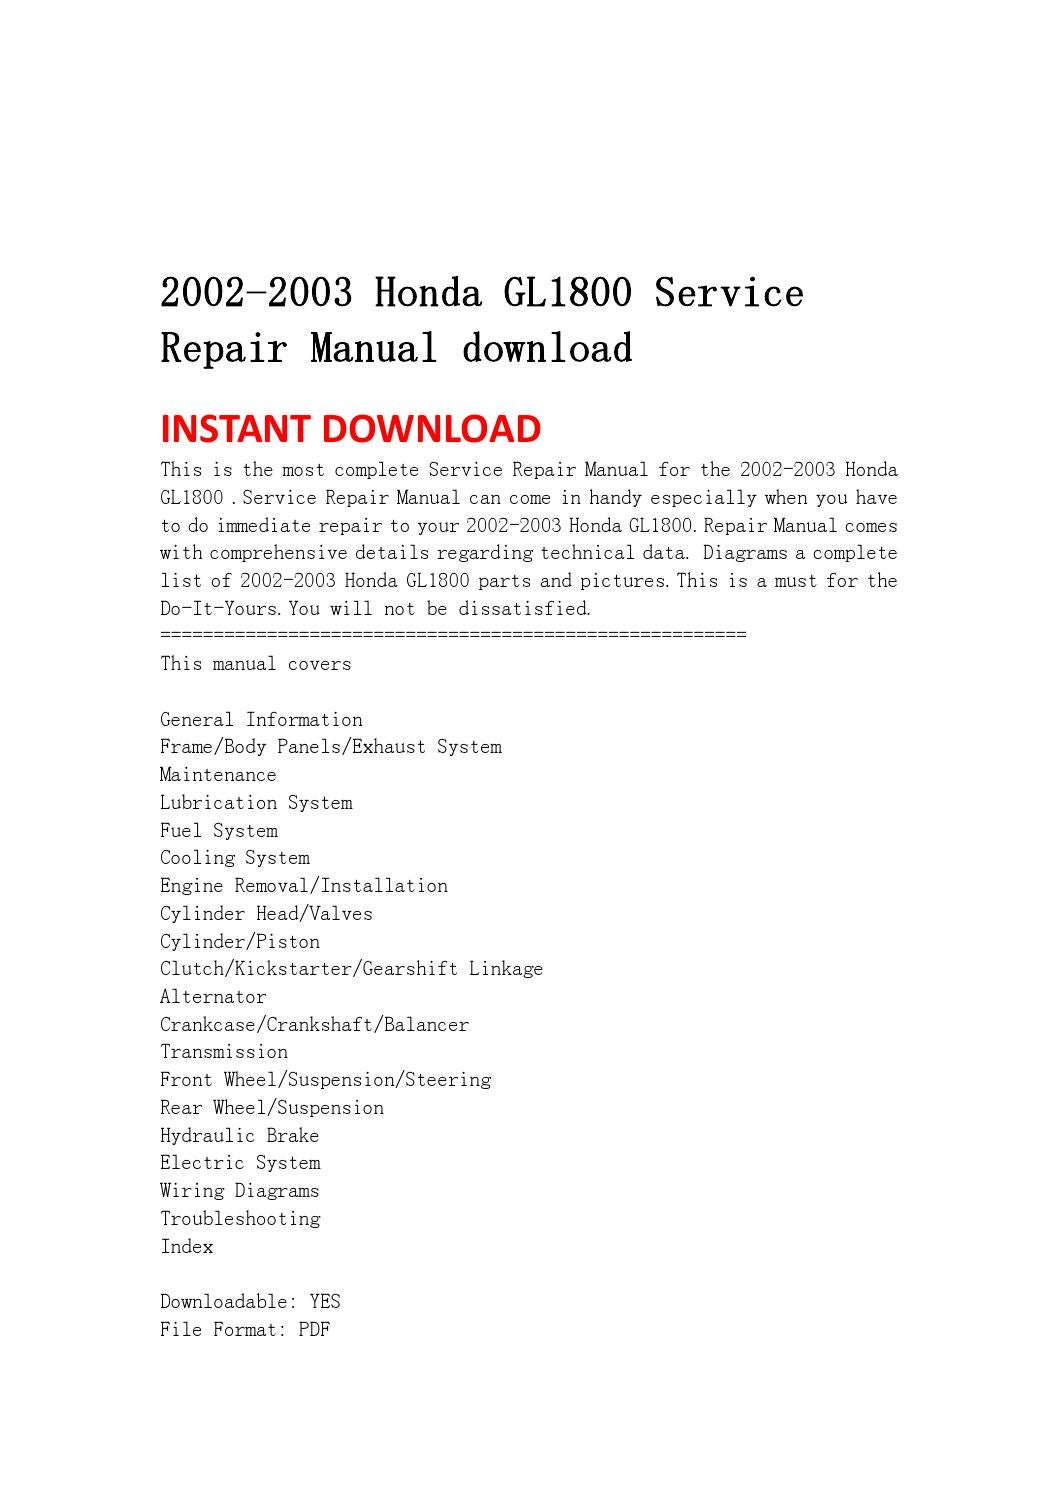 2003 Goldwing Wiring Diagram Simple Electrical Gl1800 Schematic Frame Just Honda 2002